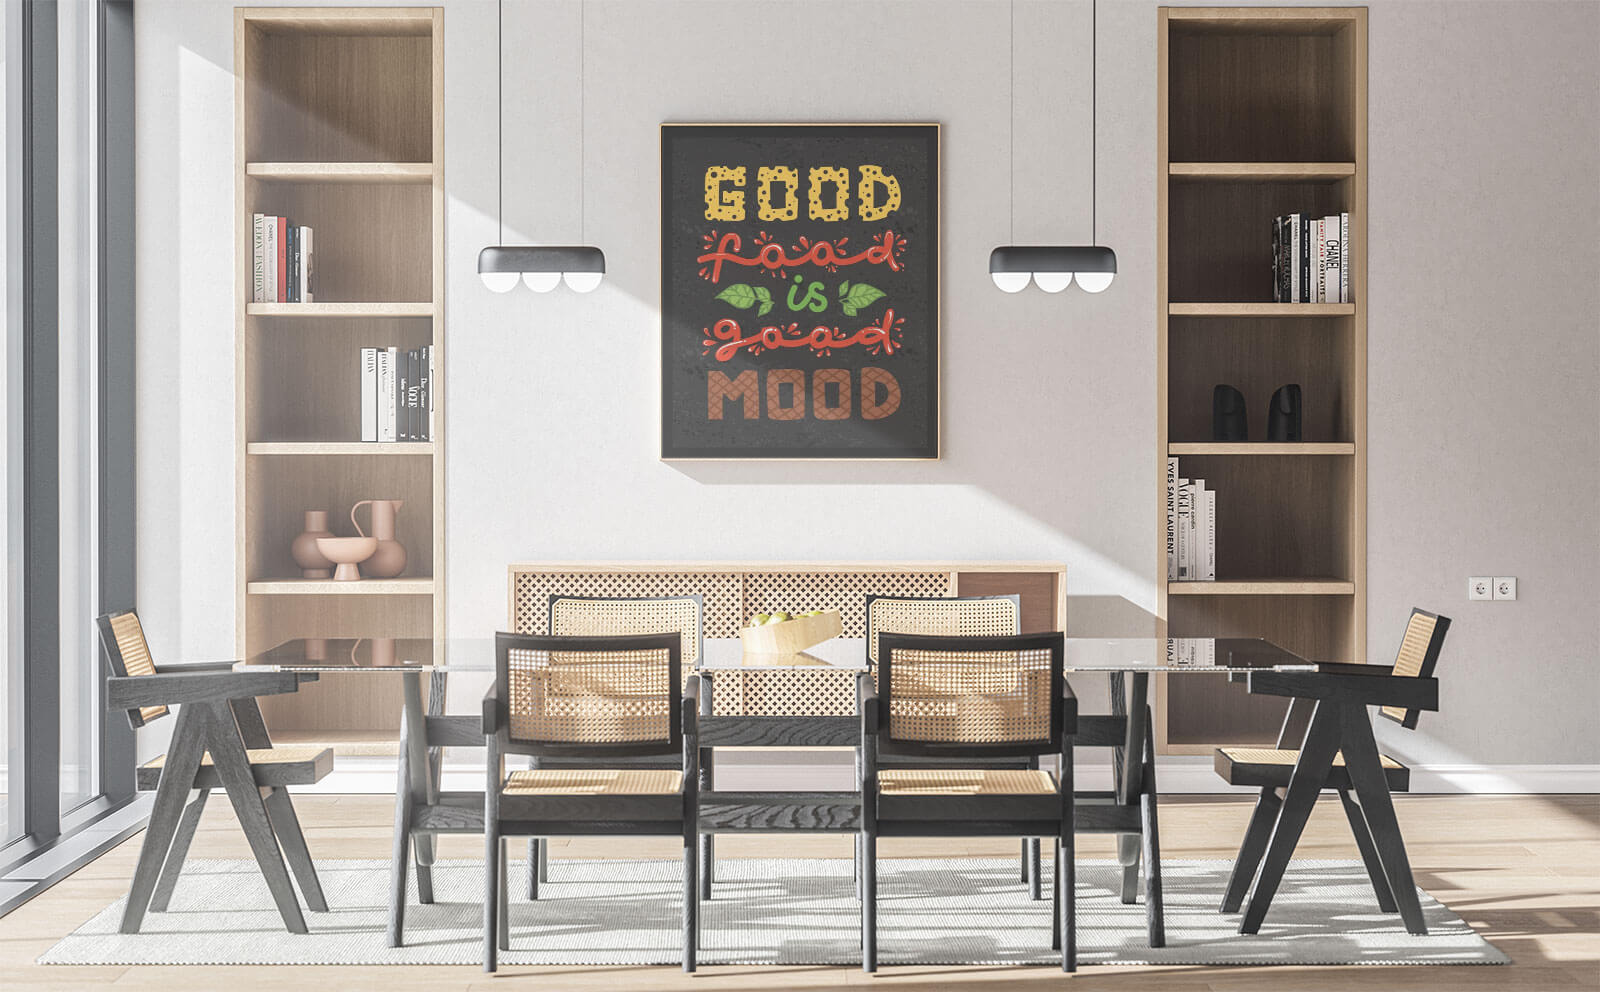 Free Dining Room Wall Canvas Poster Mockup PSD